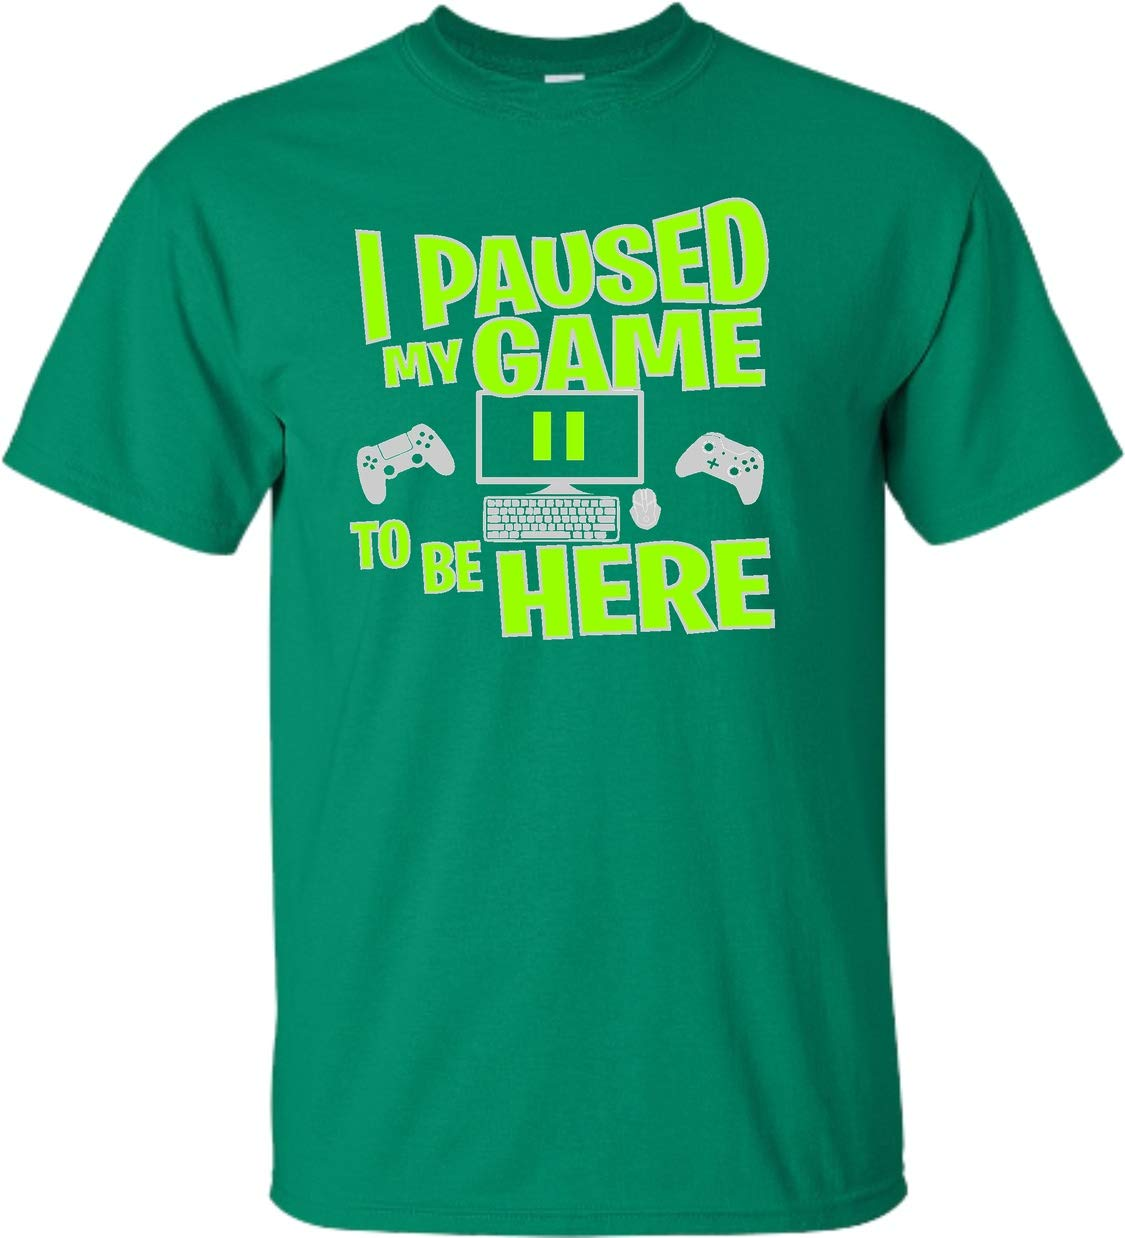 Go All Out Youth I Paused My Game to Be Here Funny Gaming T-Shirt